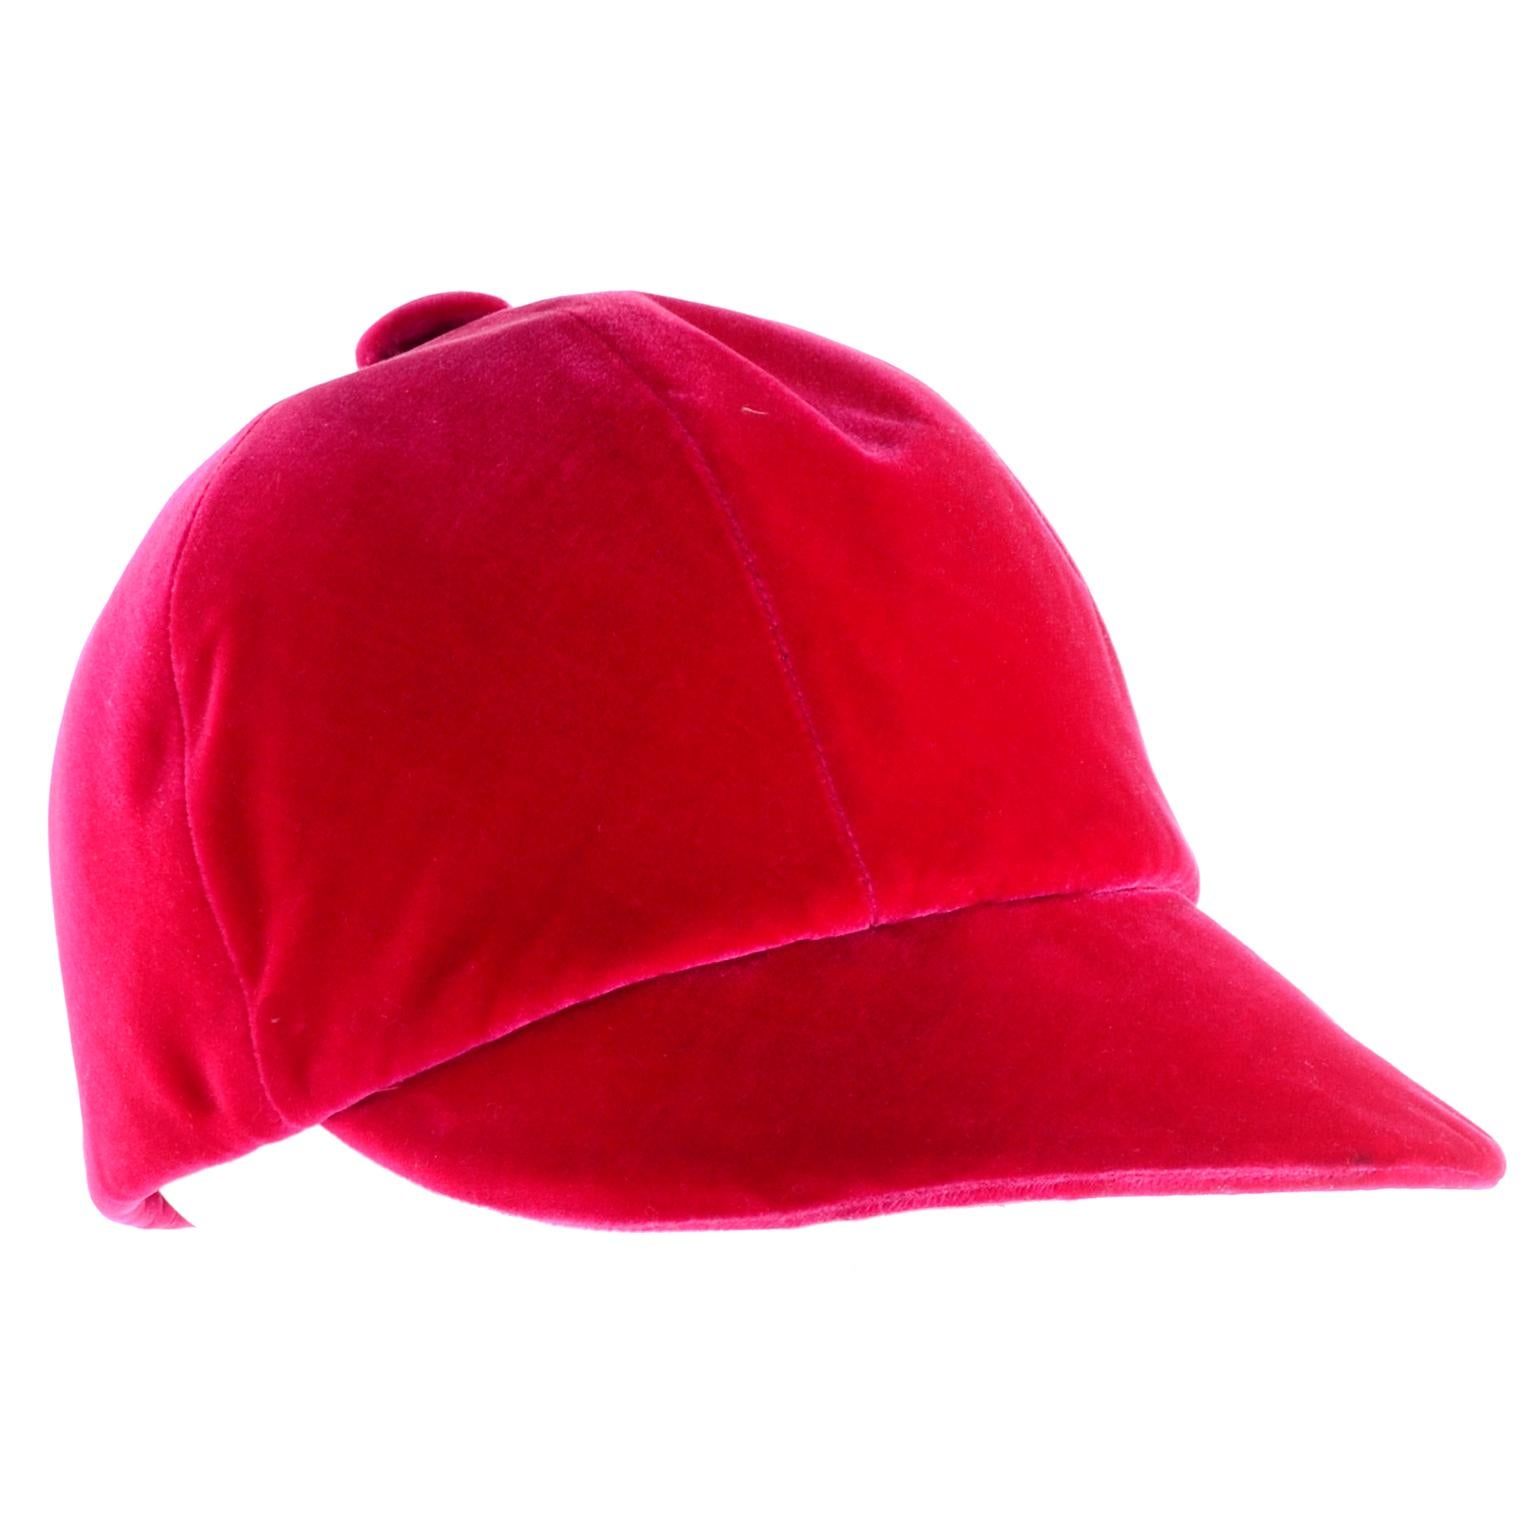 Vintage Emme Hat in Red Velvet Equestrian Riding Cap